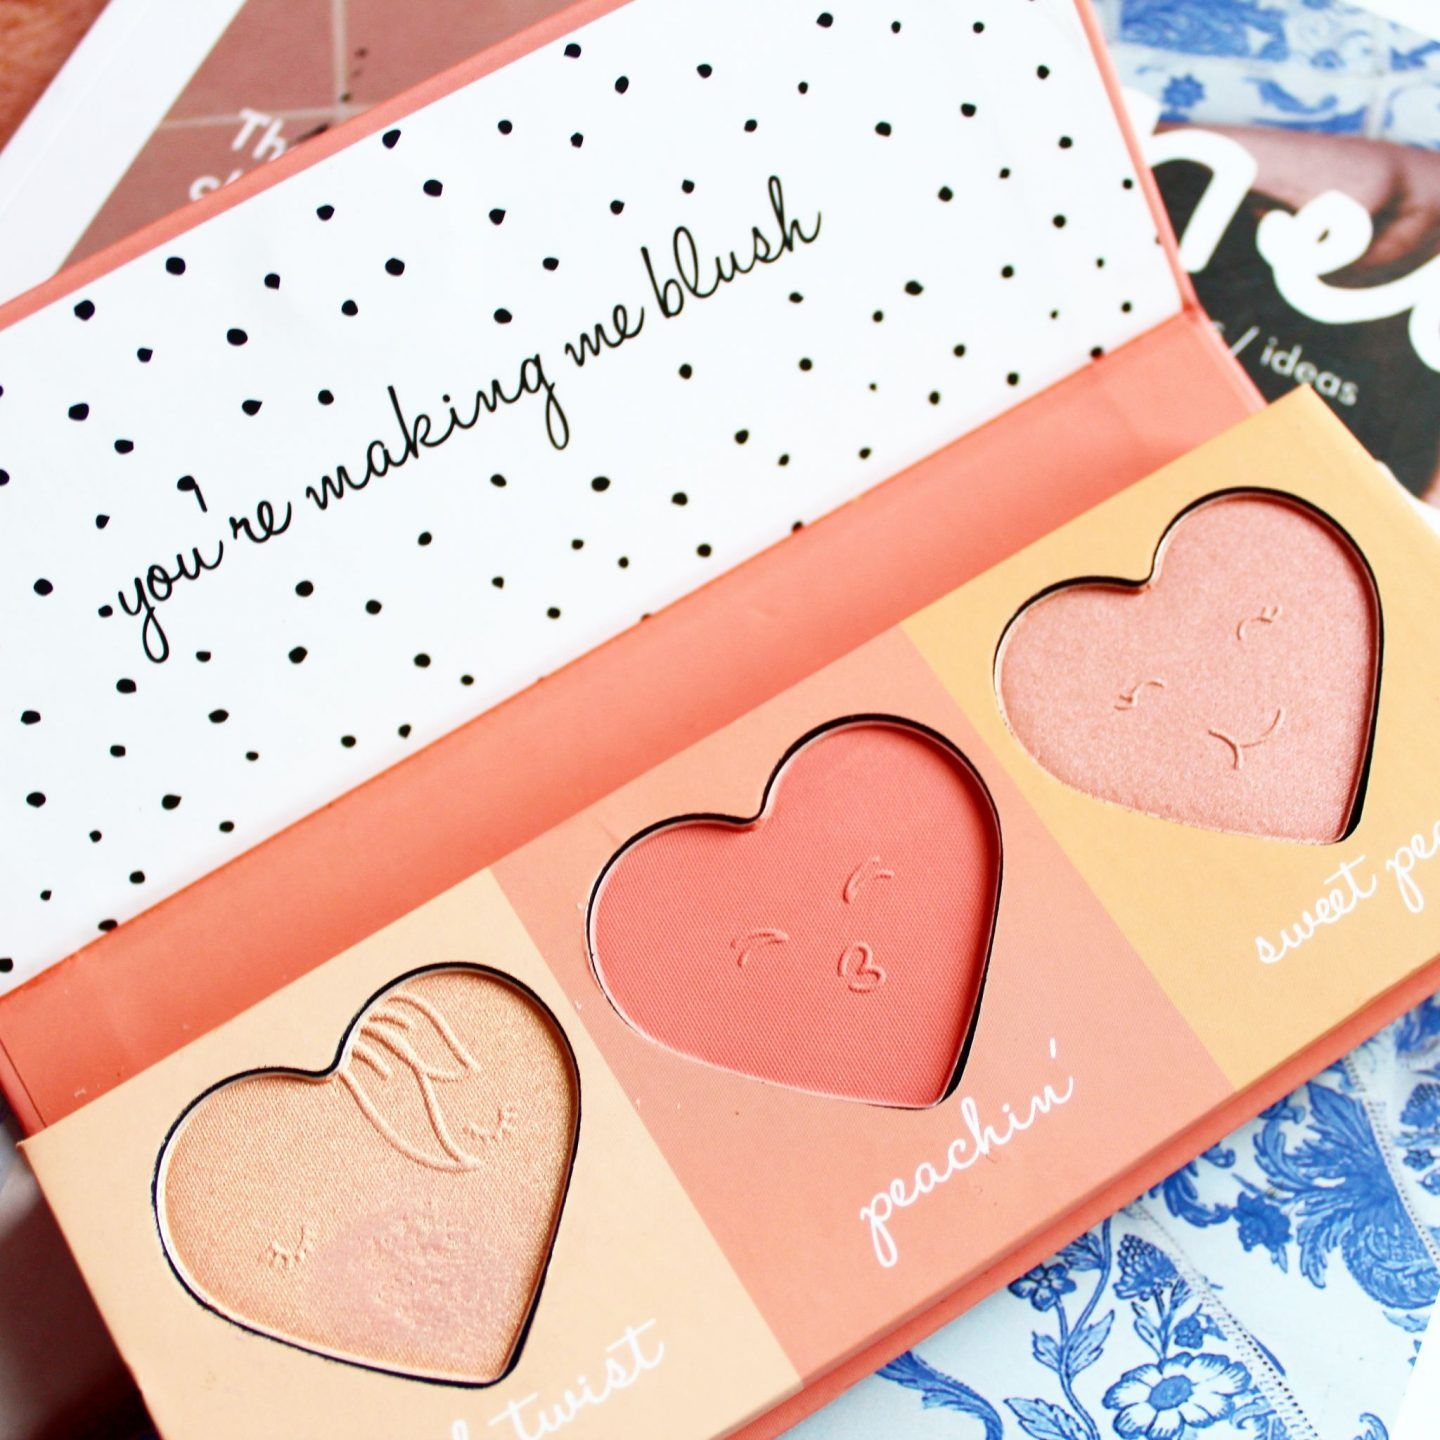 Beauty Products Primark: Primark 'Just Peachy' Collection